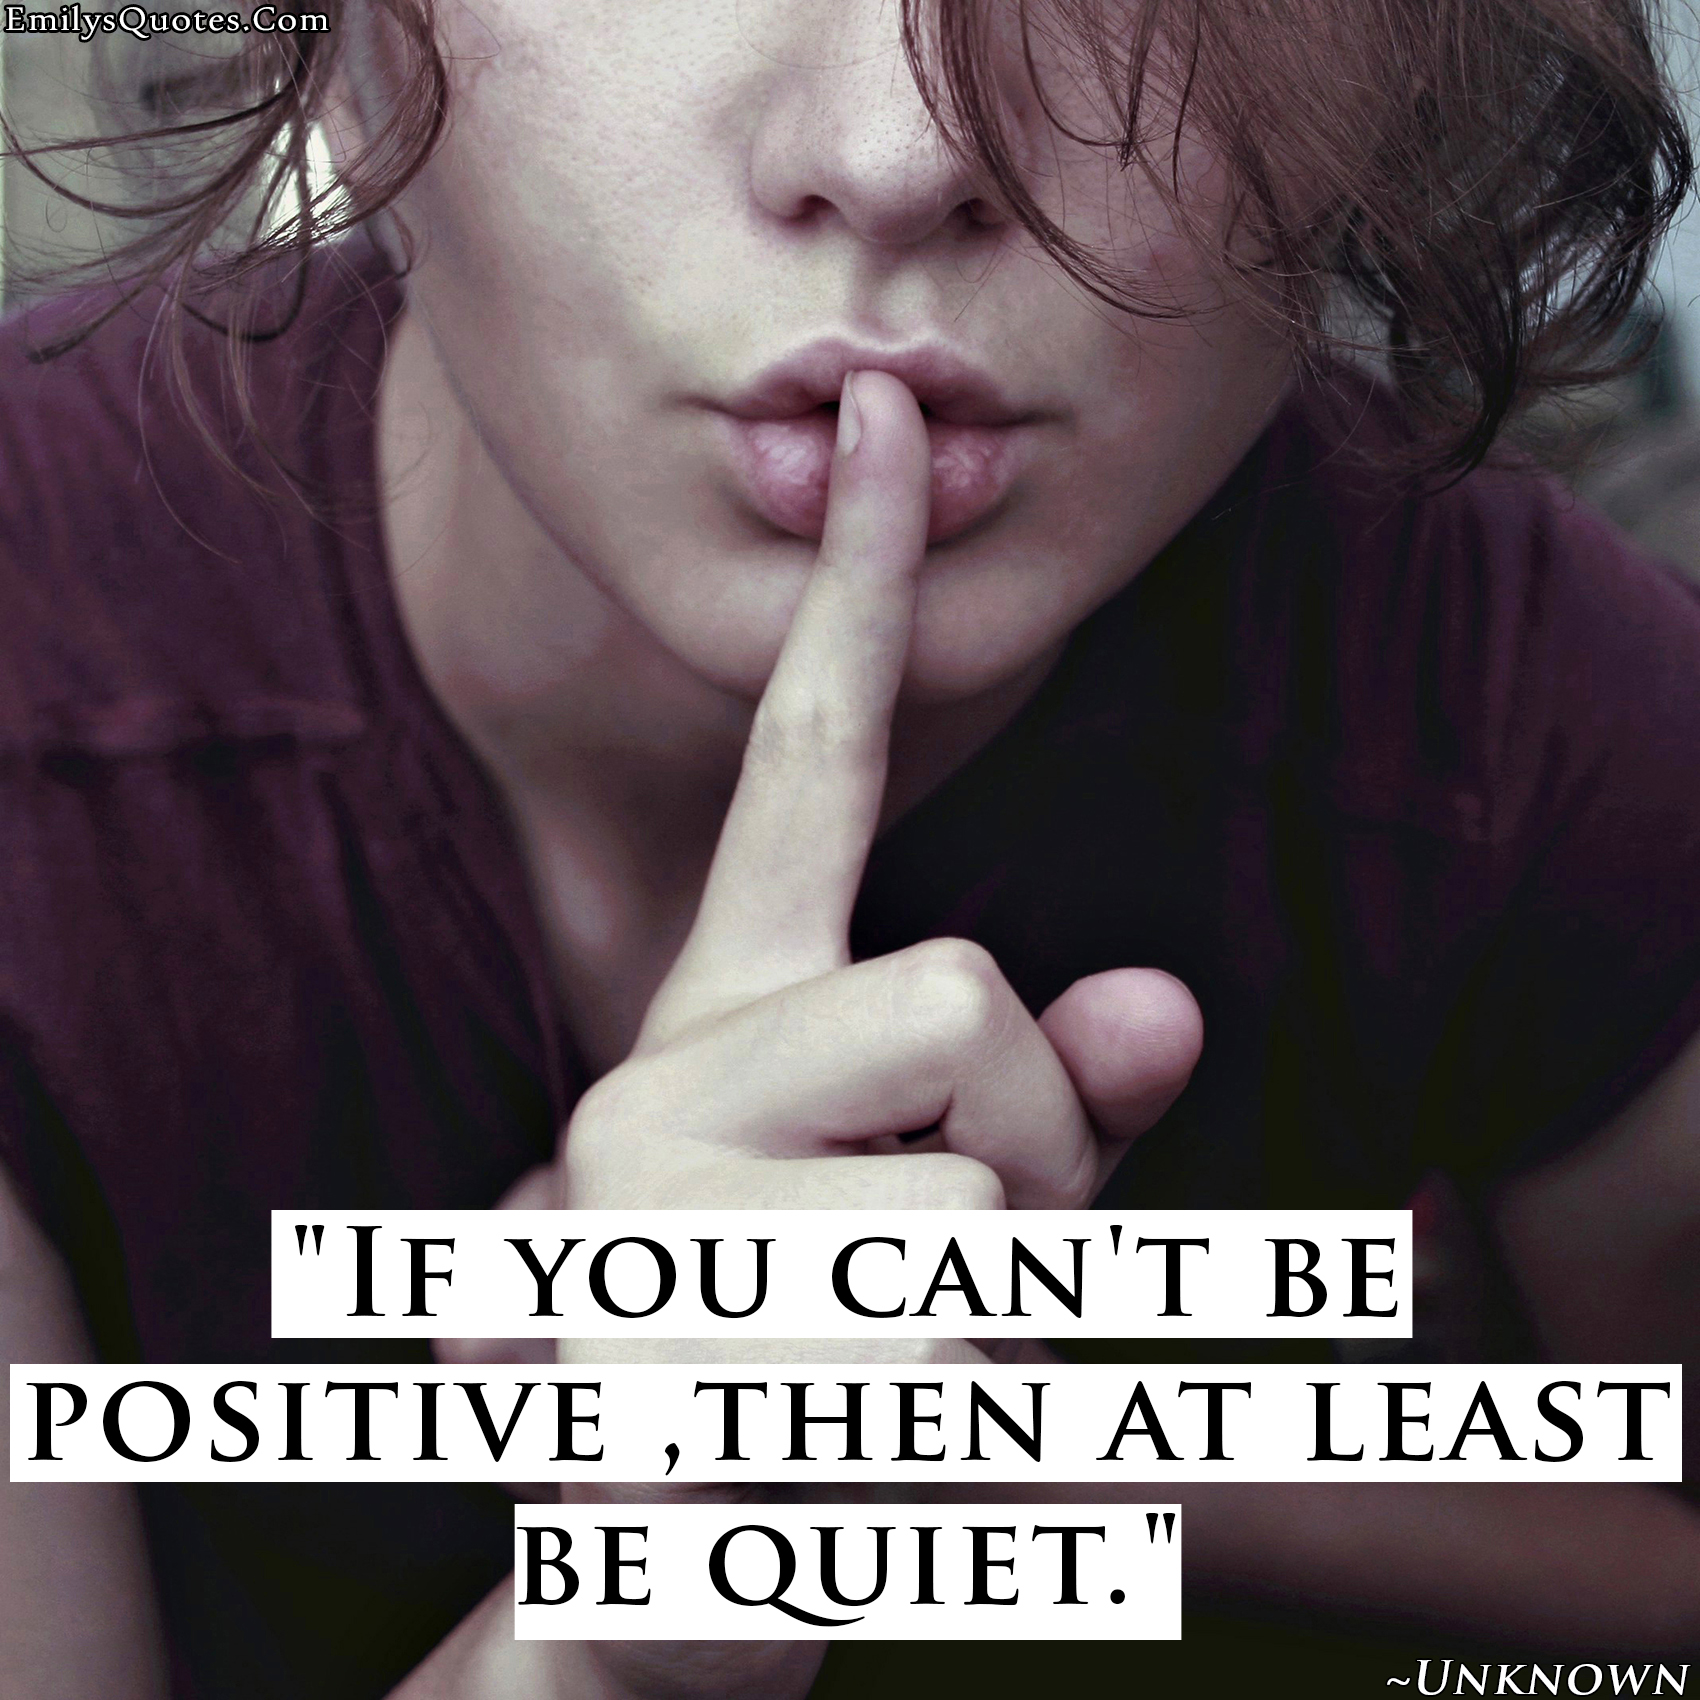 EmilysQuotes.Com - unknown, positive, communication, quiet, being a good person